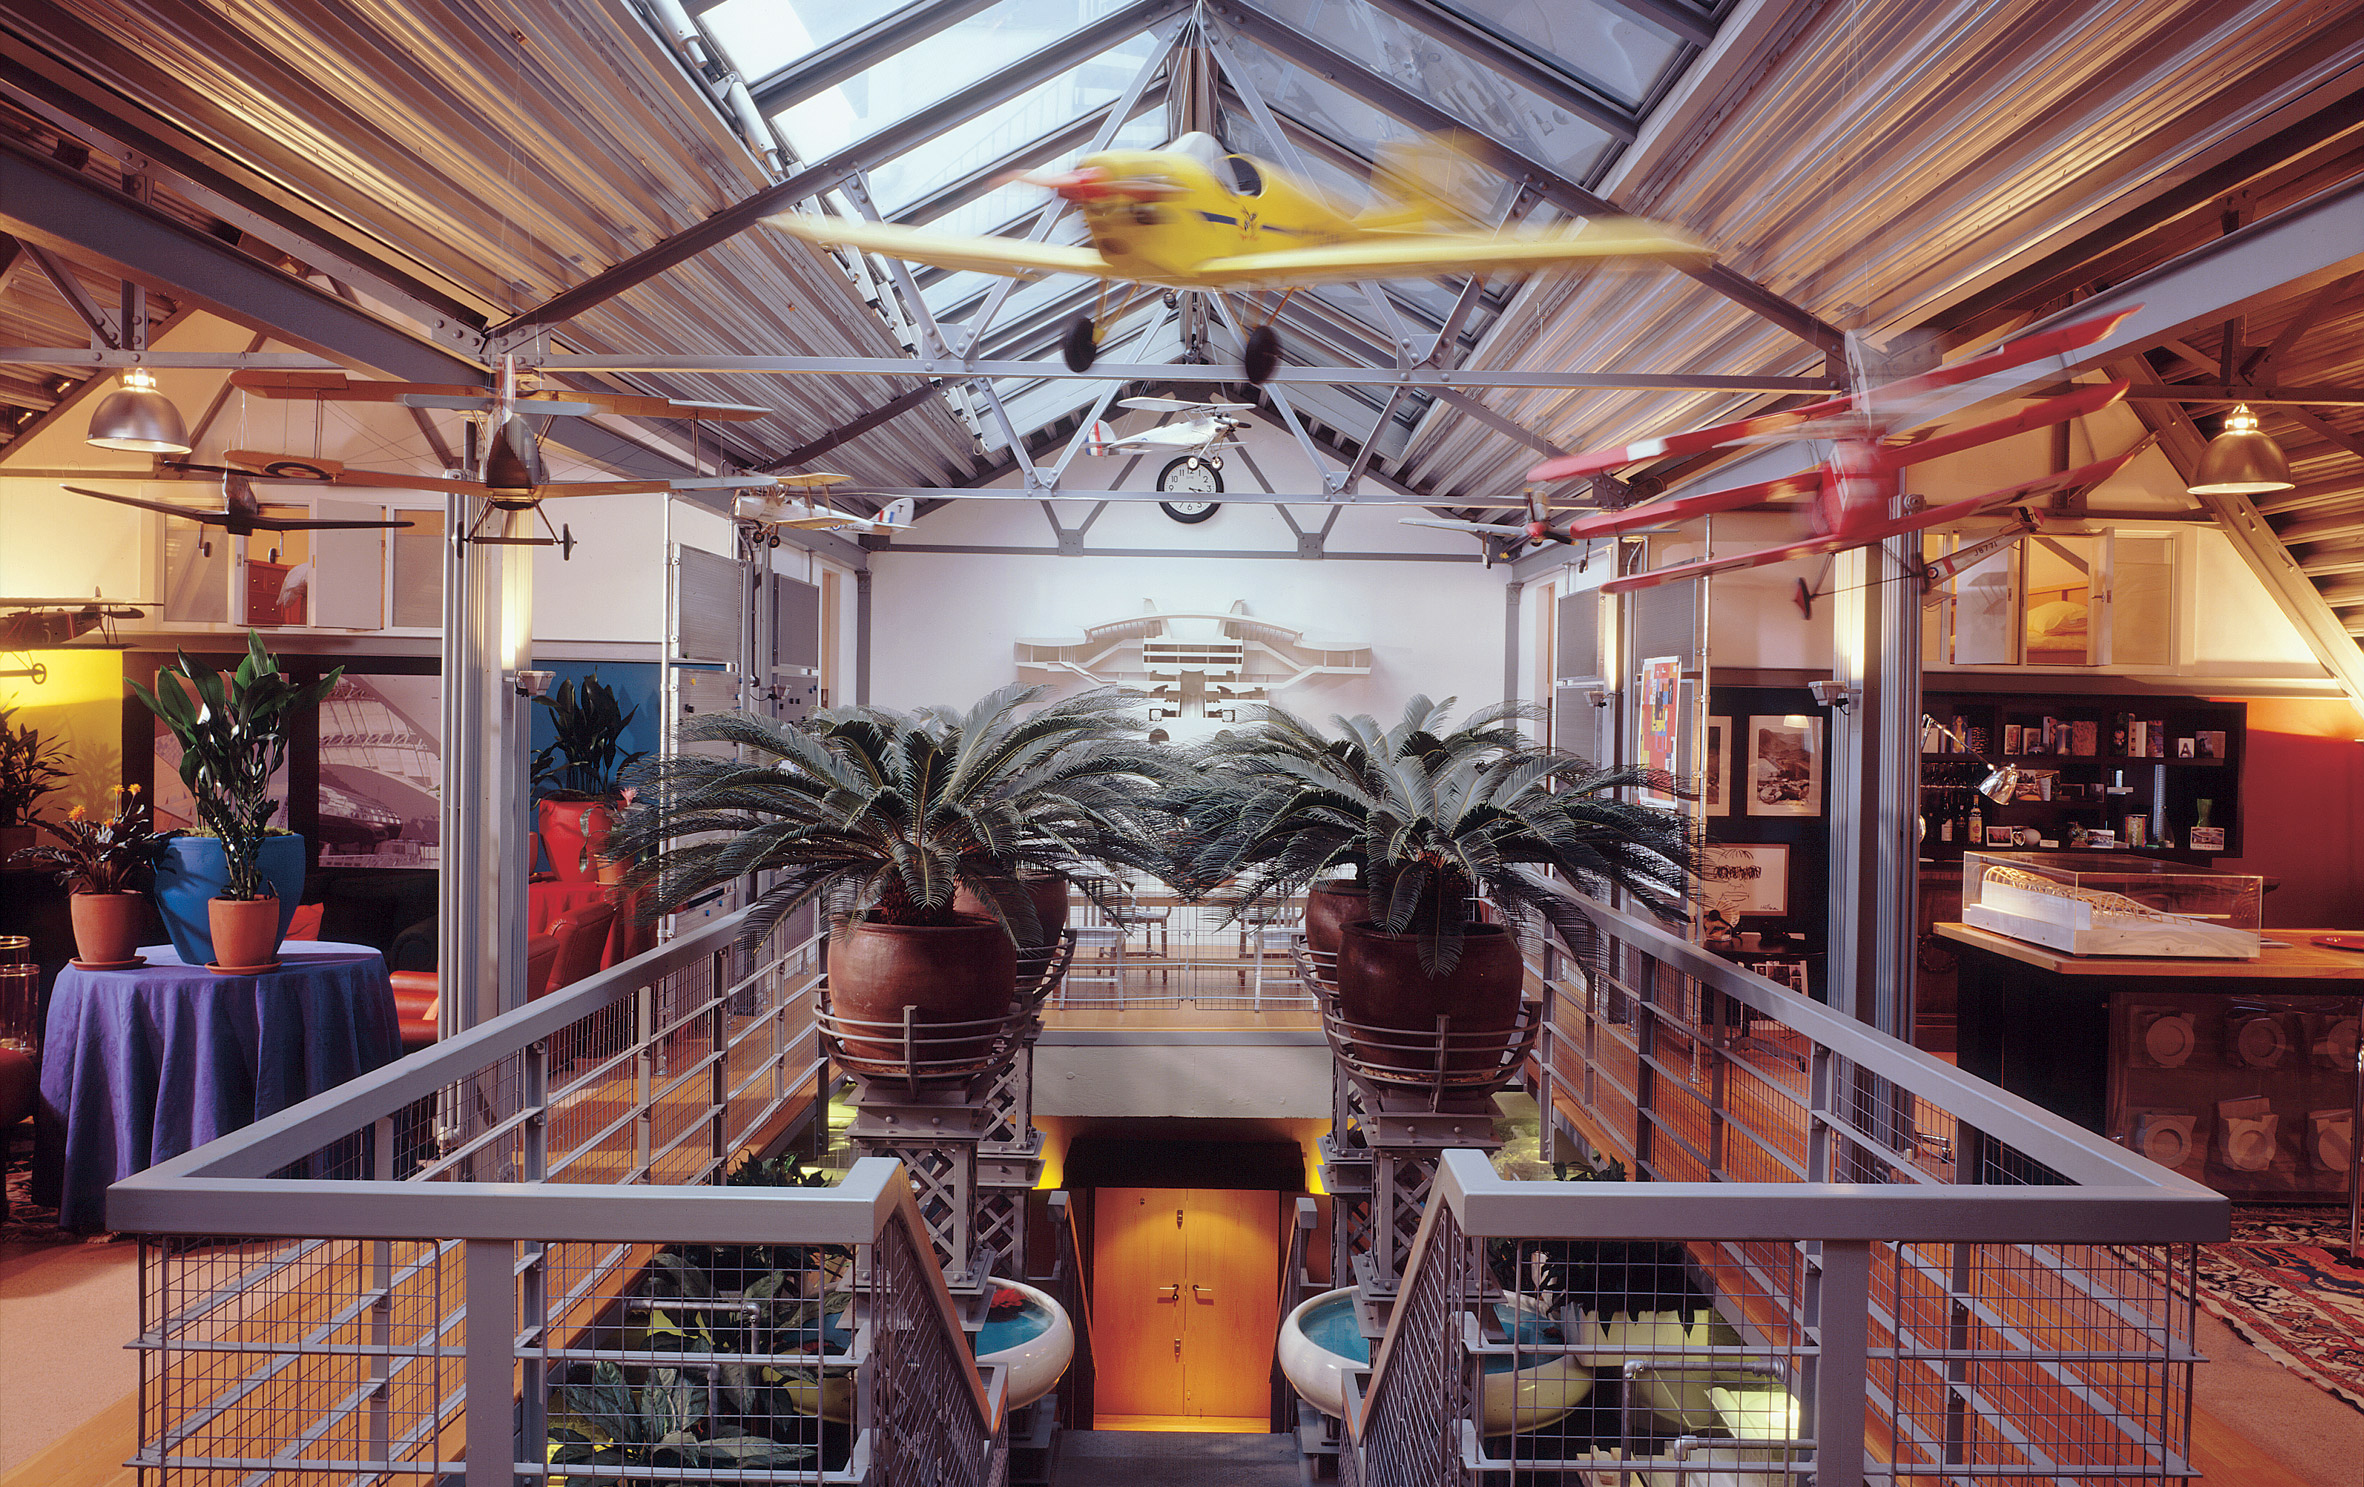 Terry Farrell Puts His Colourful Flat In Old Aeroworks On The Market